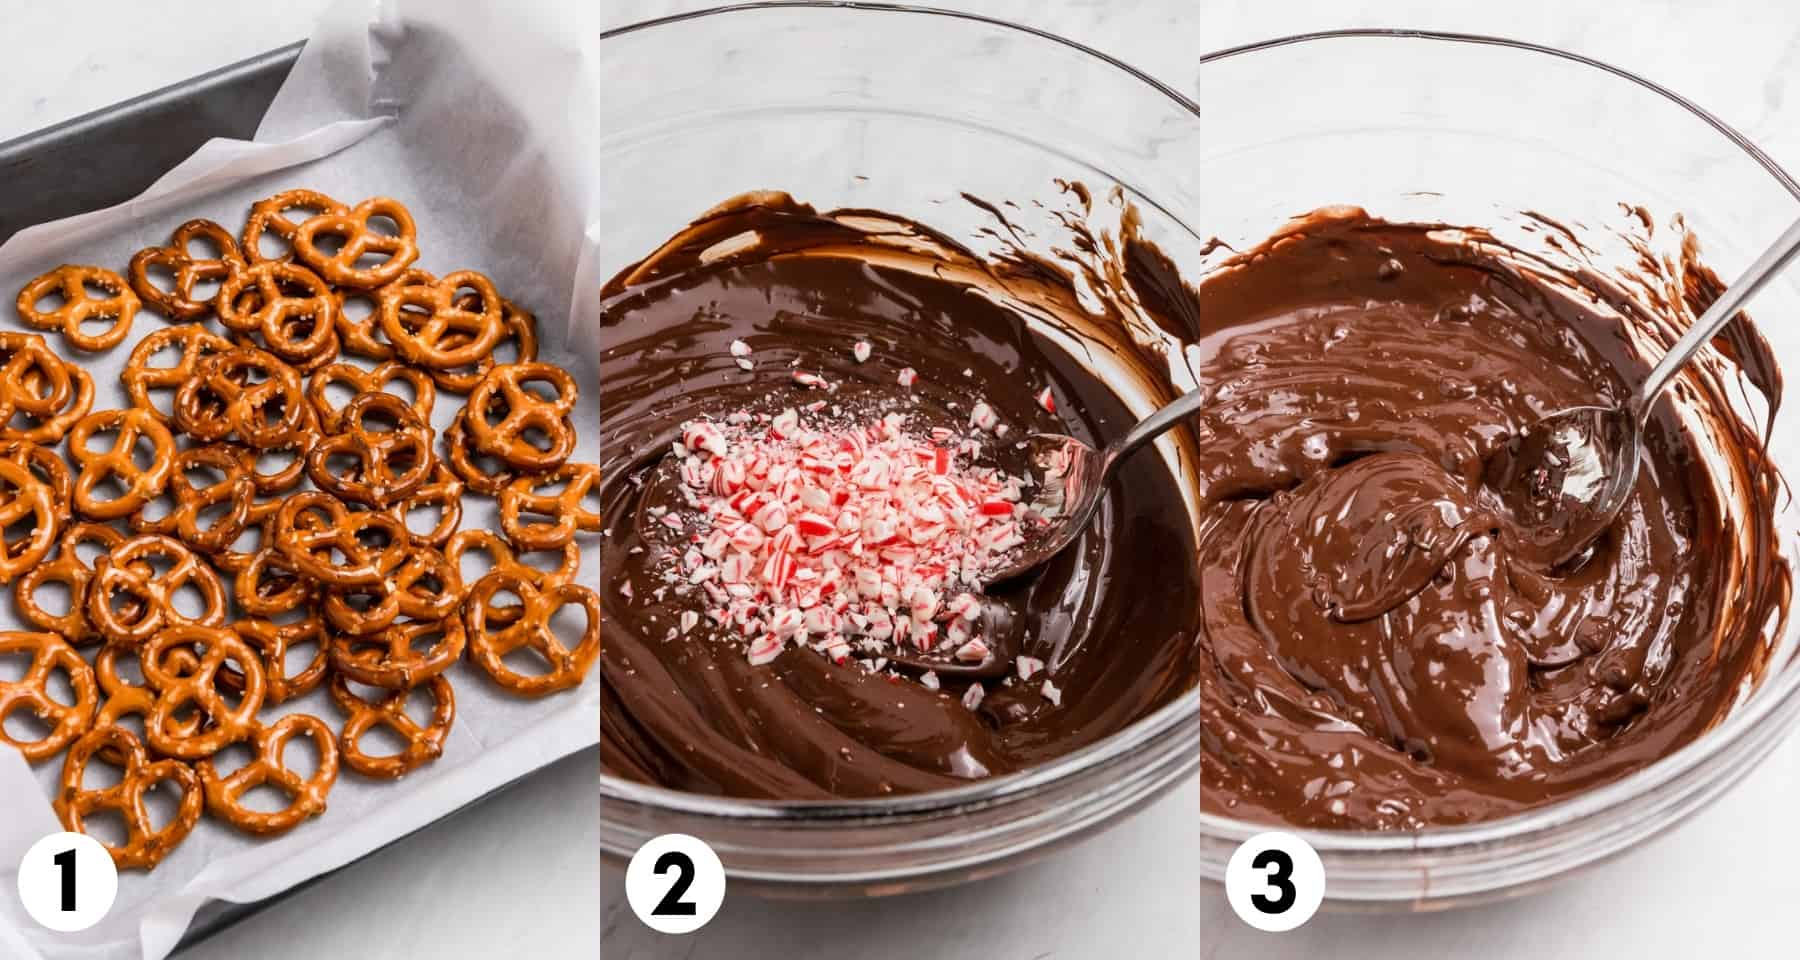 Pretzels on parchment lined pan and mixing bowl with dark chocolate melted with candy canes.